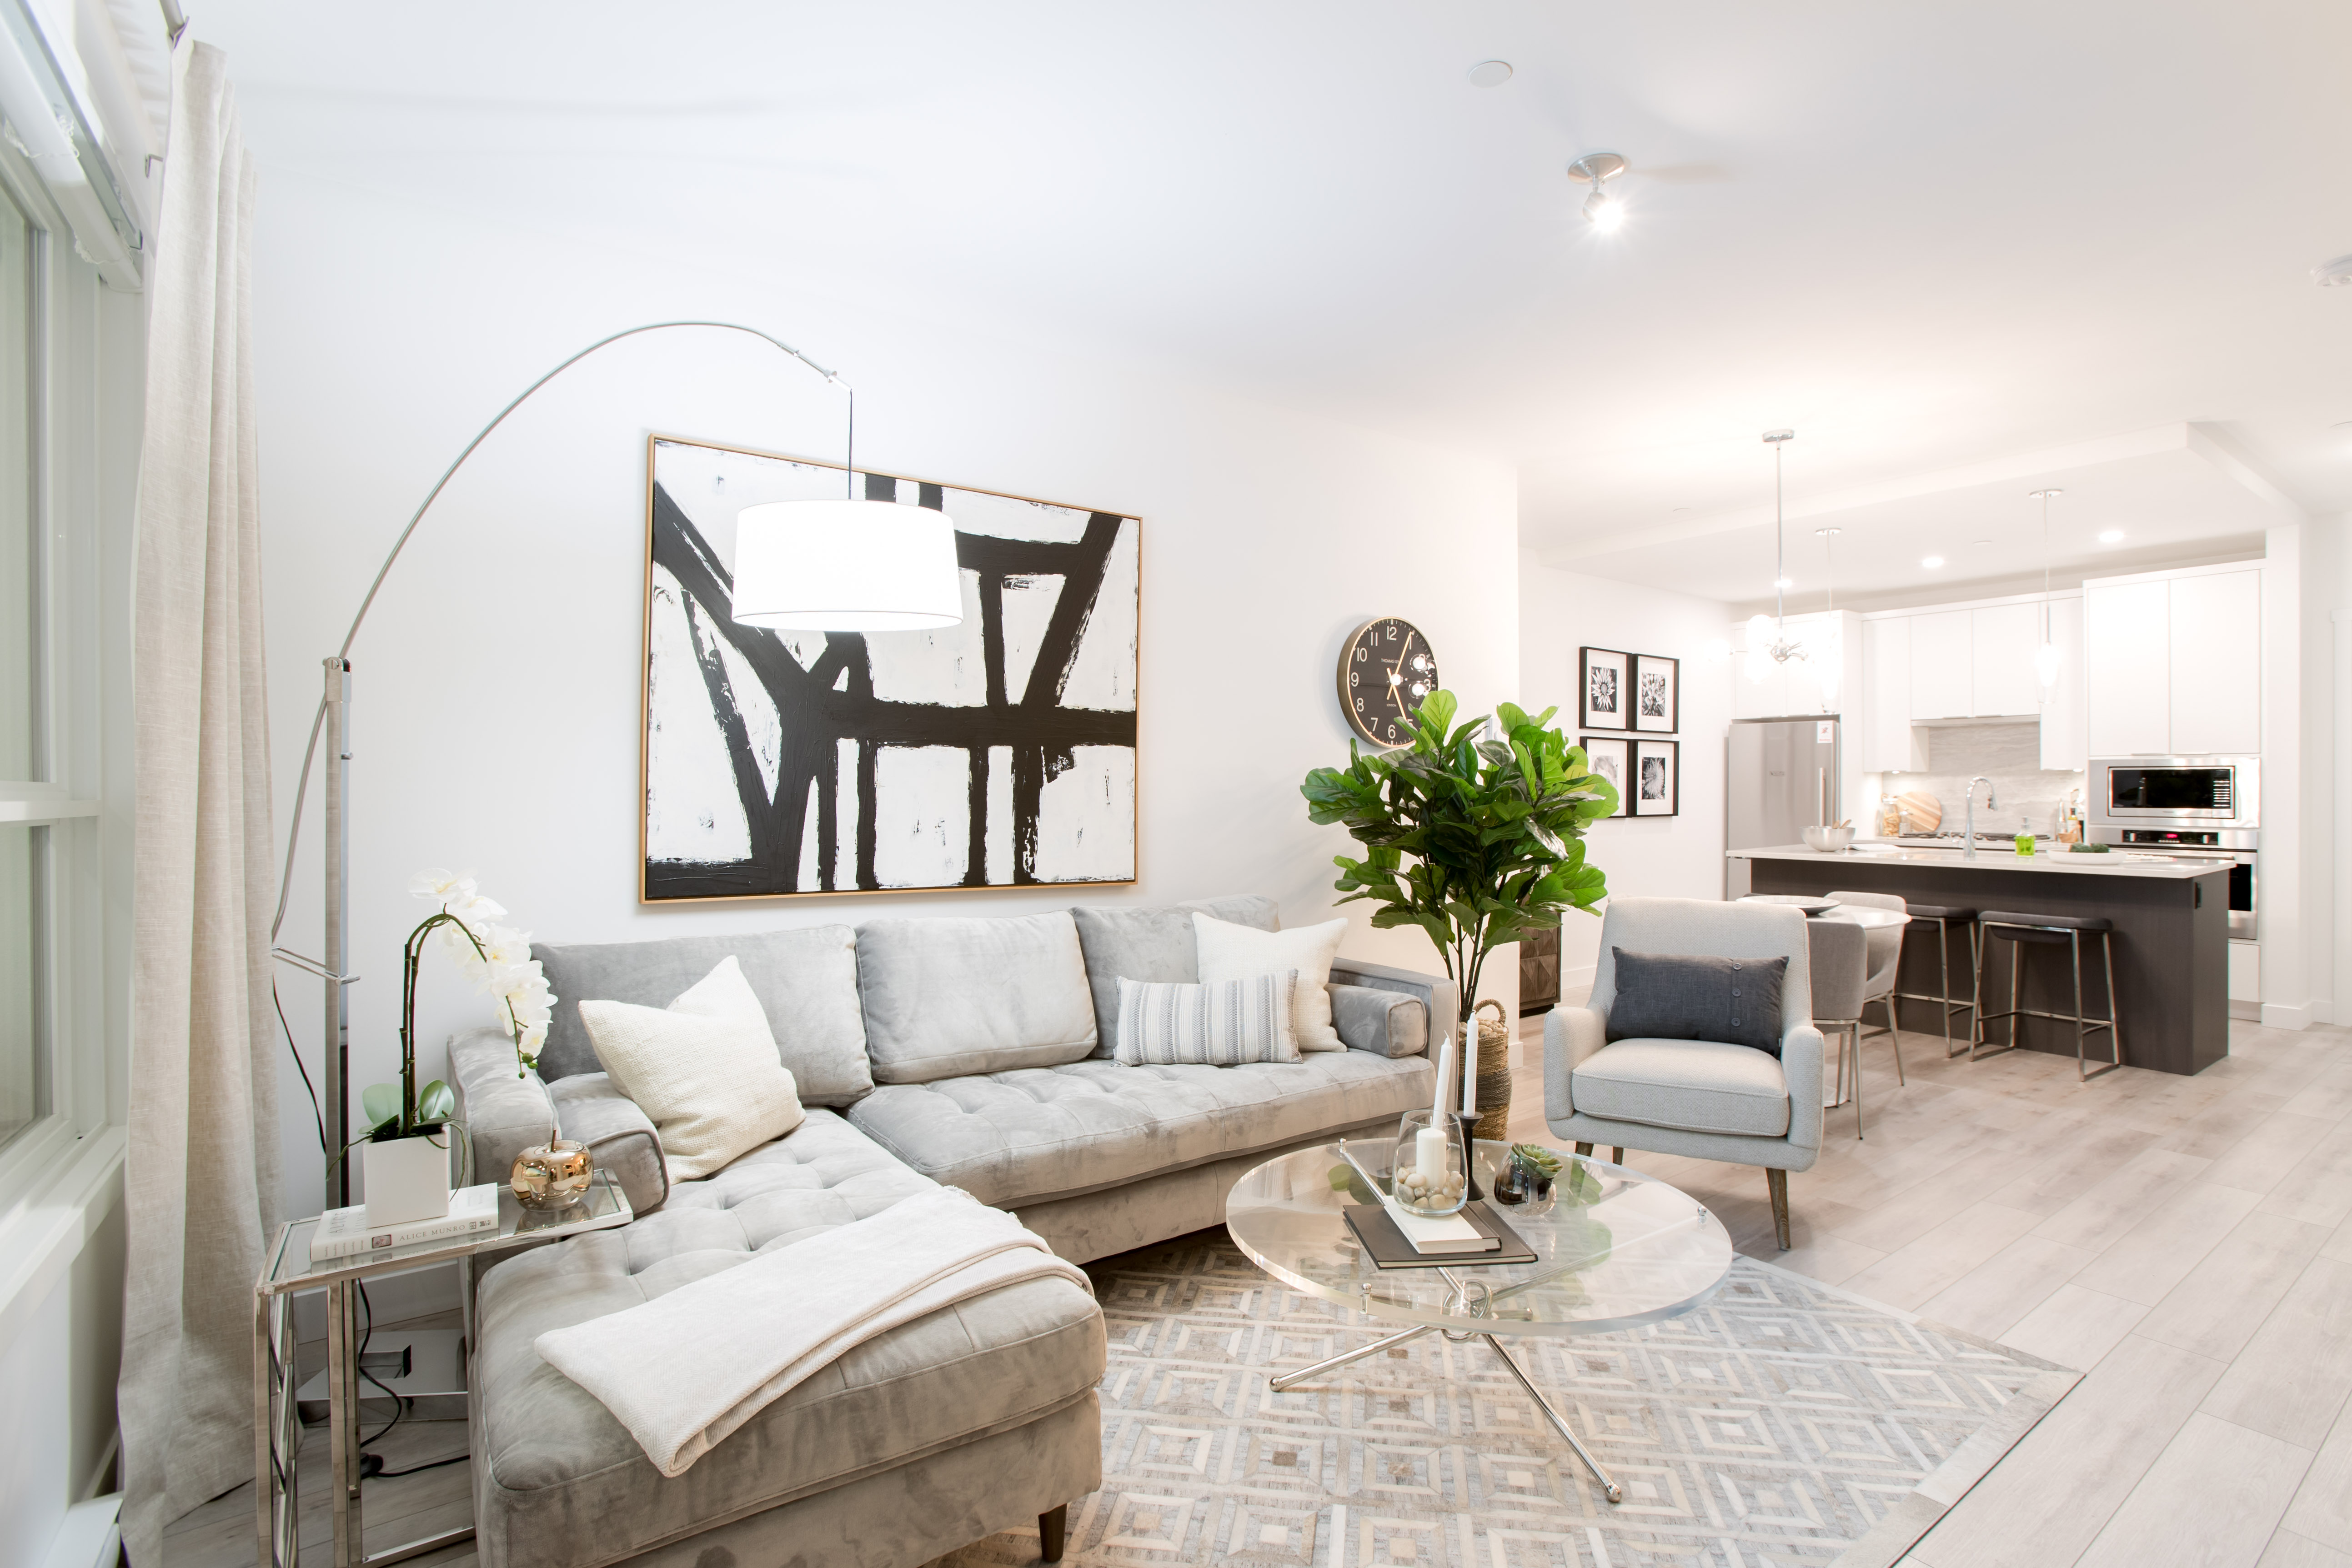 https://highpointeliving.ca/wp-content/uploads/2019/08/Model-suite-A45I9988.jpg